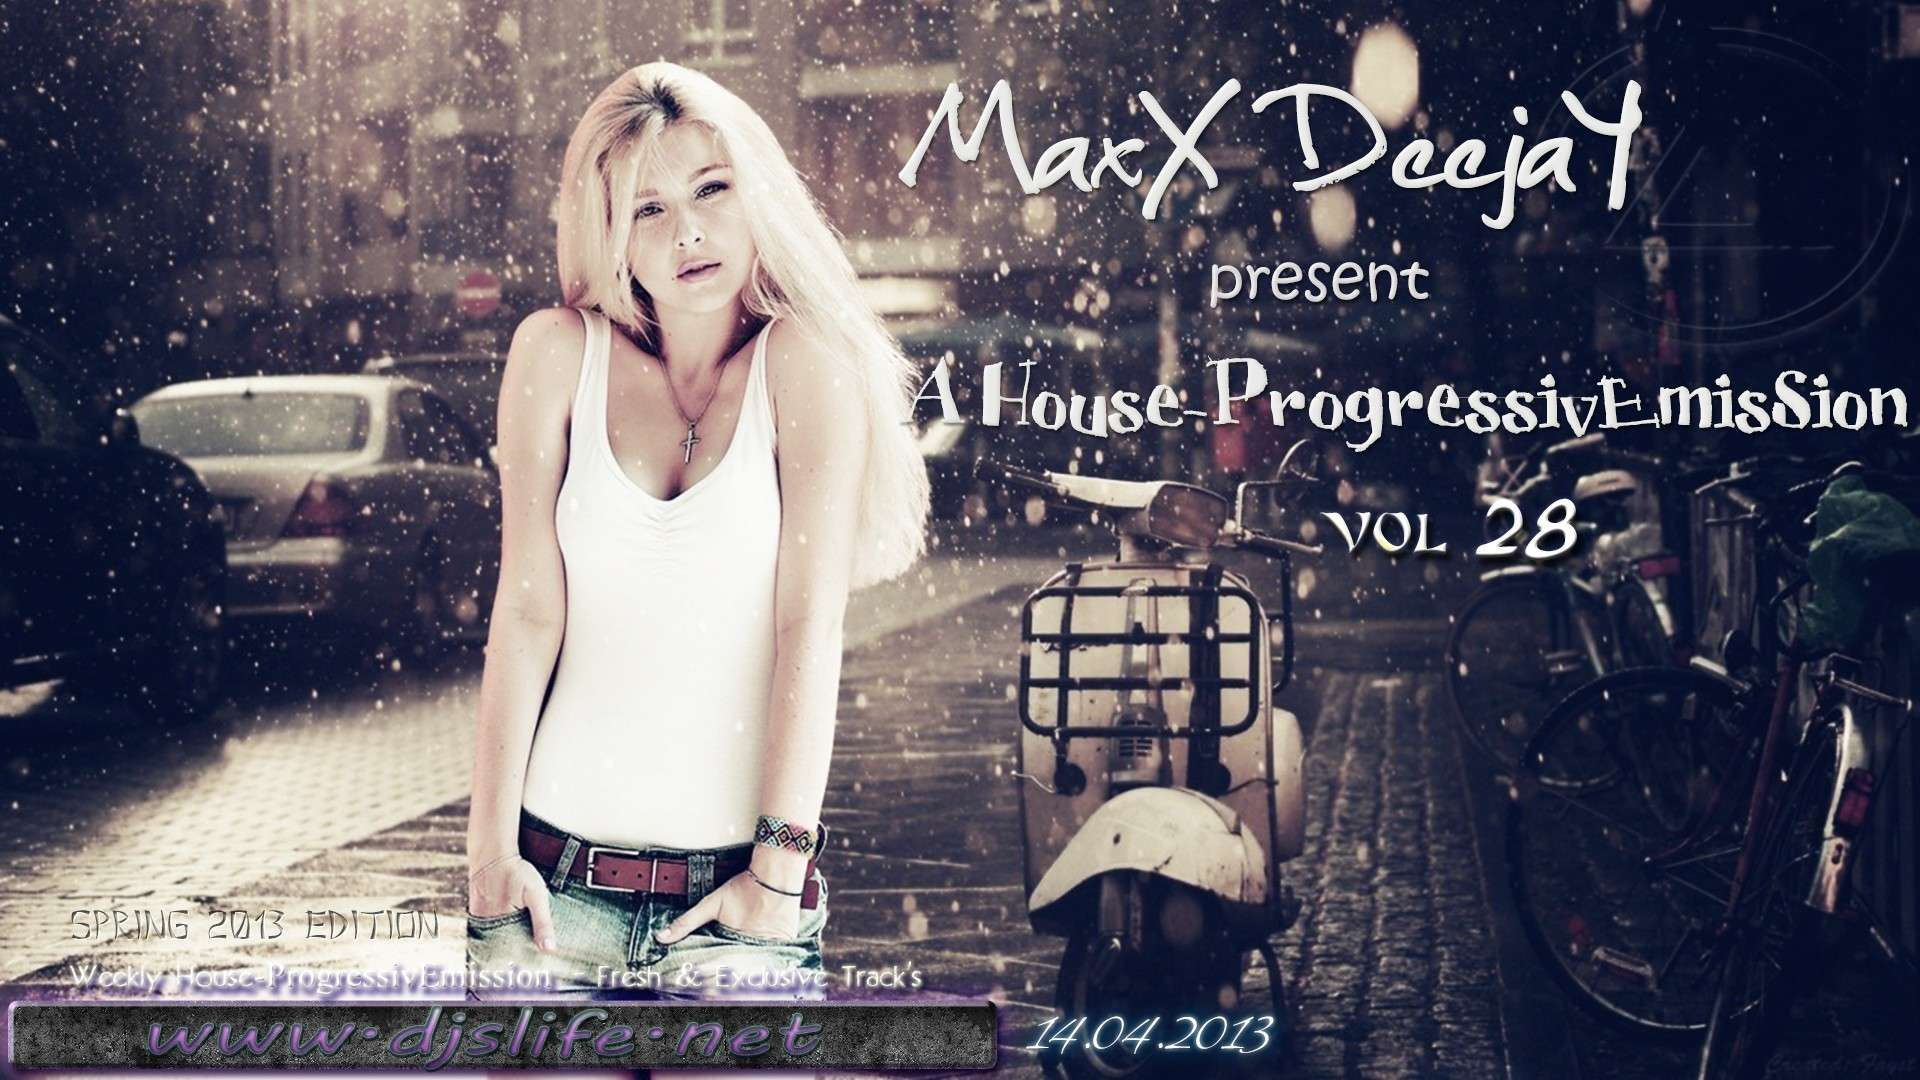 MaxX DeejaY - A House-ProgressivEmisSion vol.28 [14.04.2013]